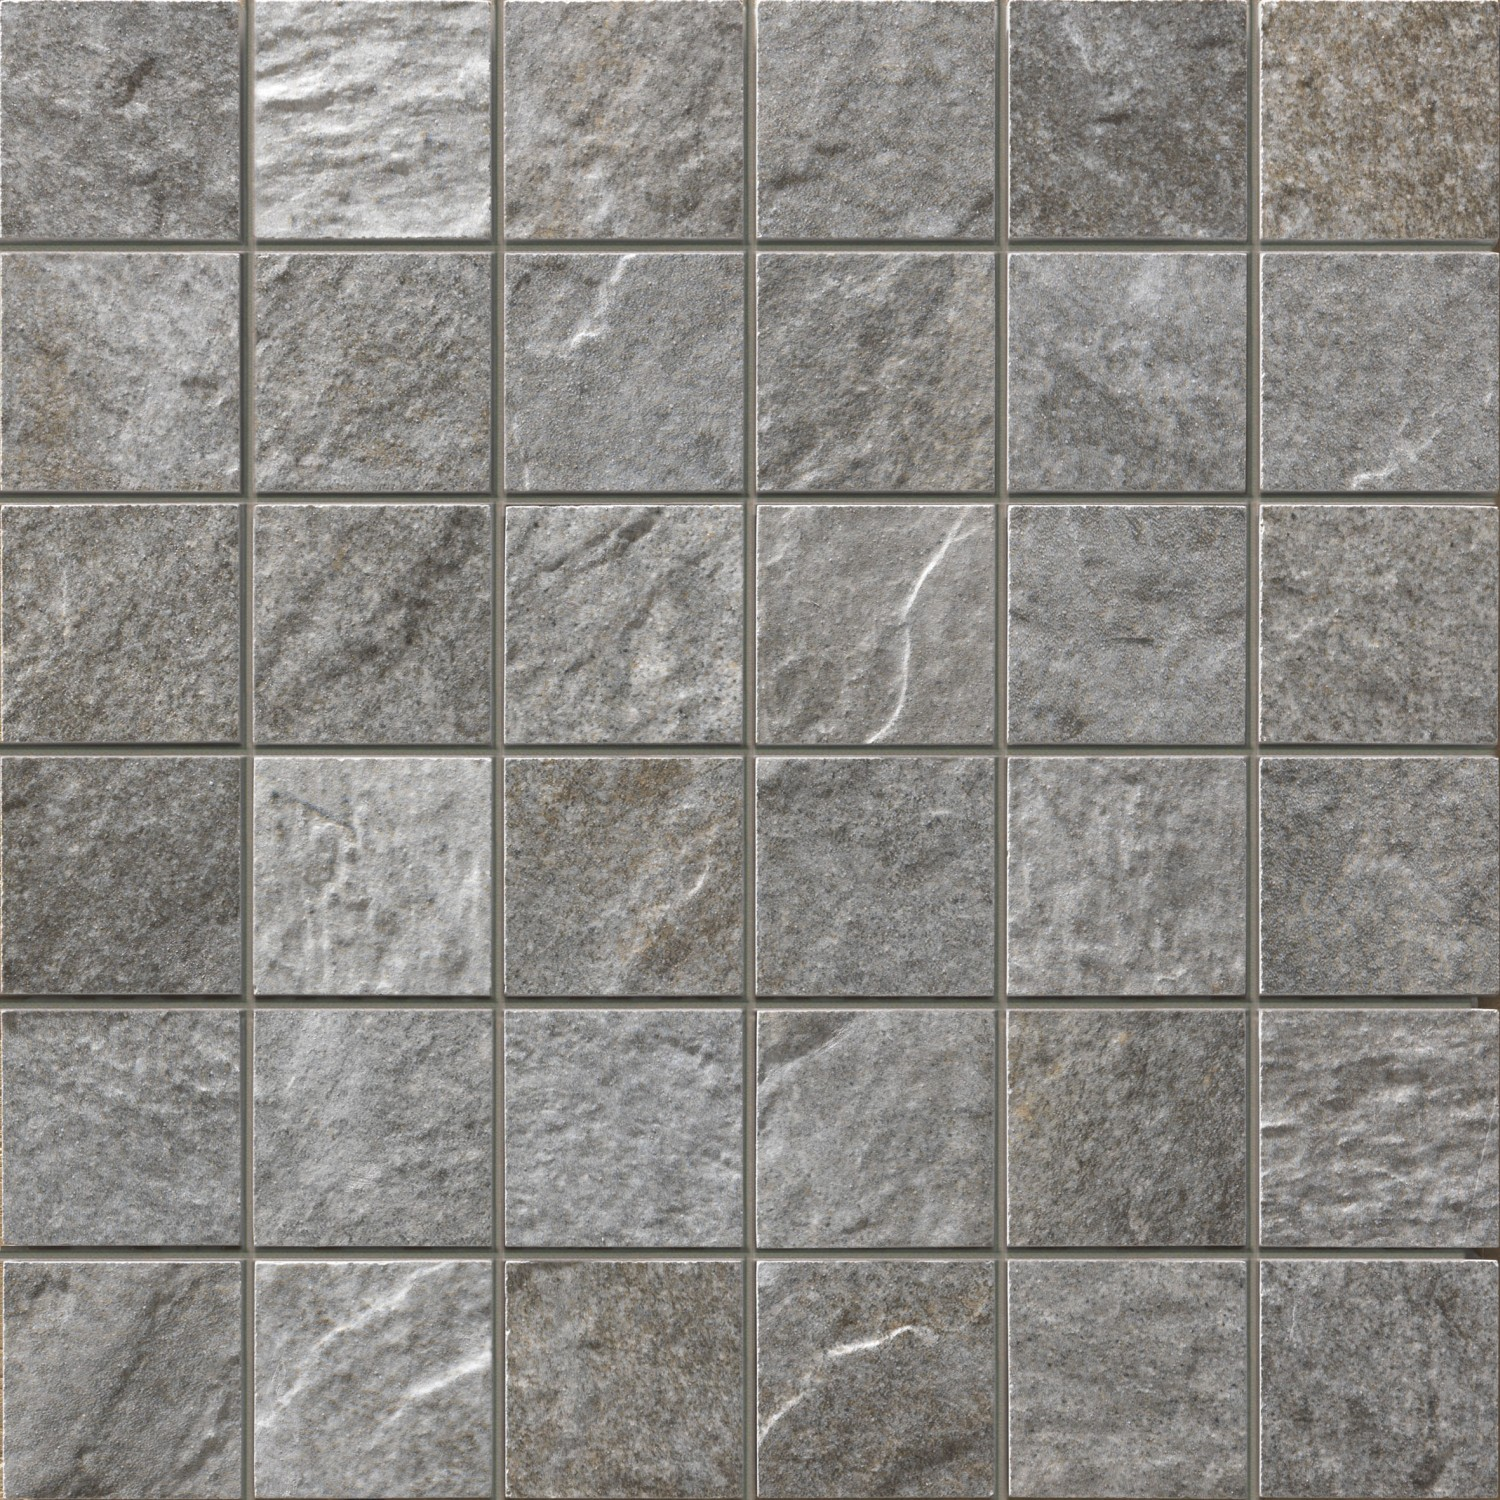 Bathroom Flooring Texture Part 50